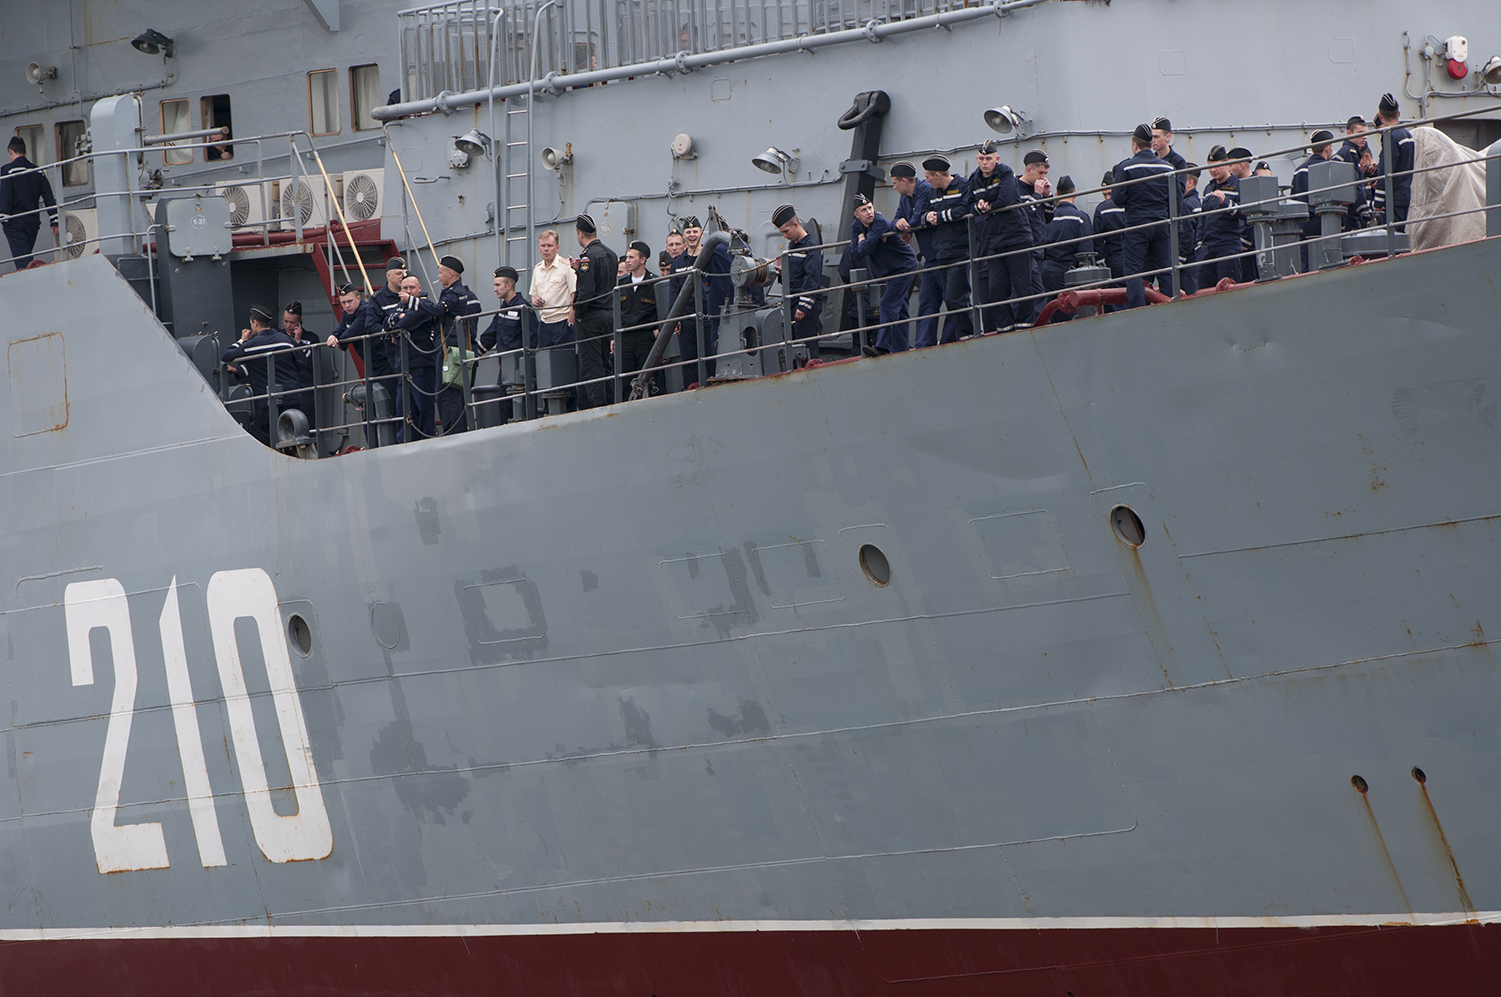 Some of the 400 sailors from the Russian Navy obeserving the harbour minutes before disembark the Smolny.